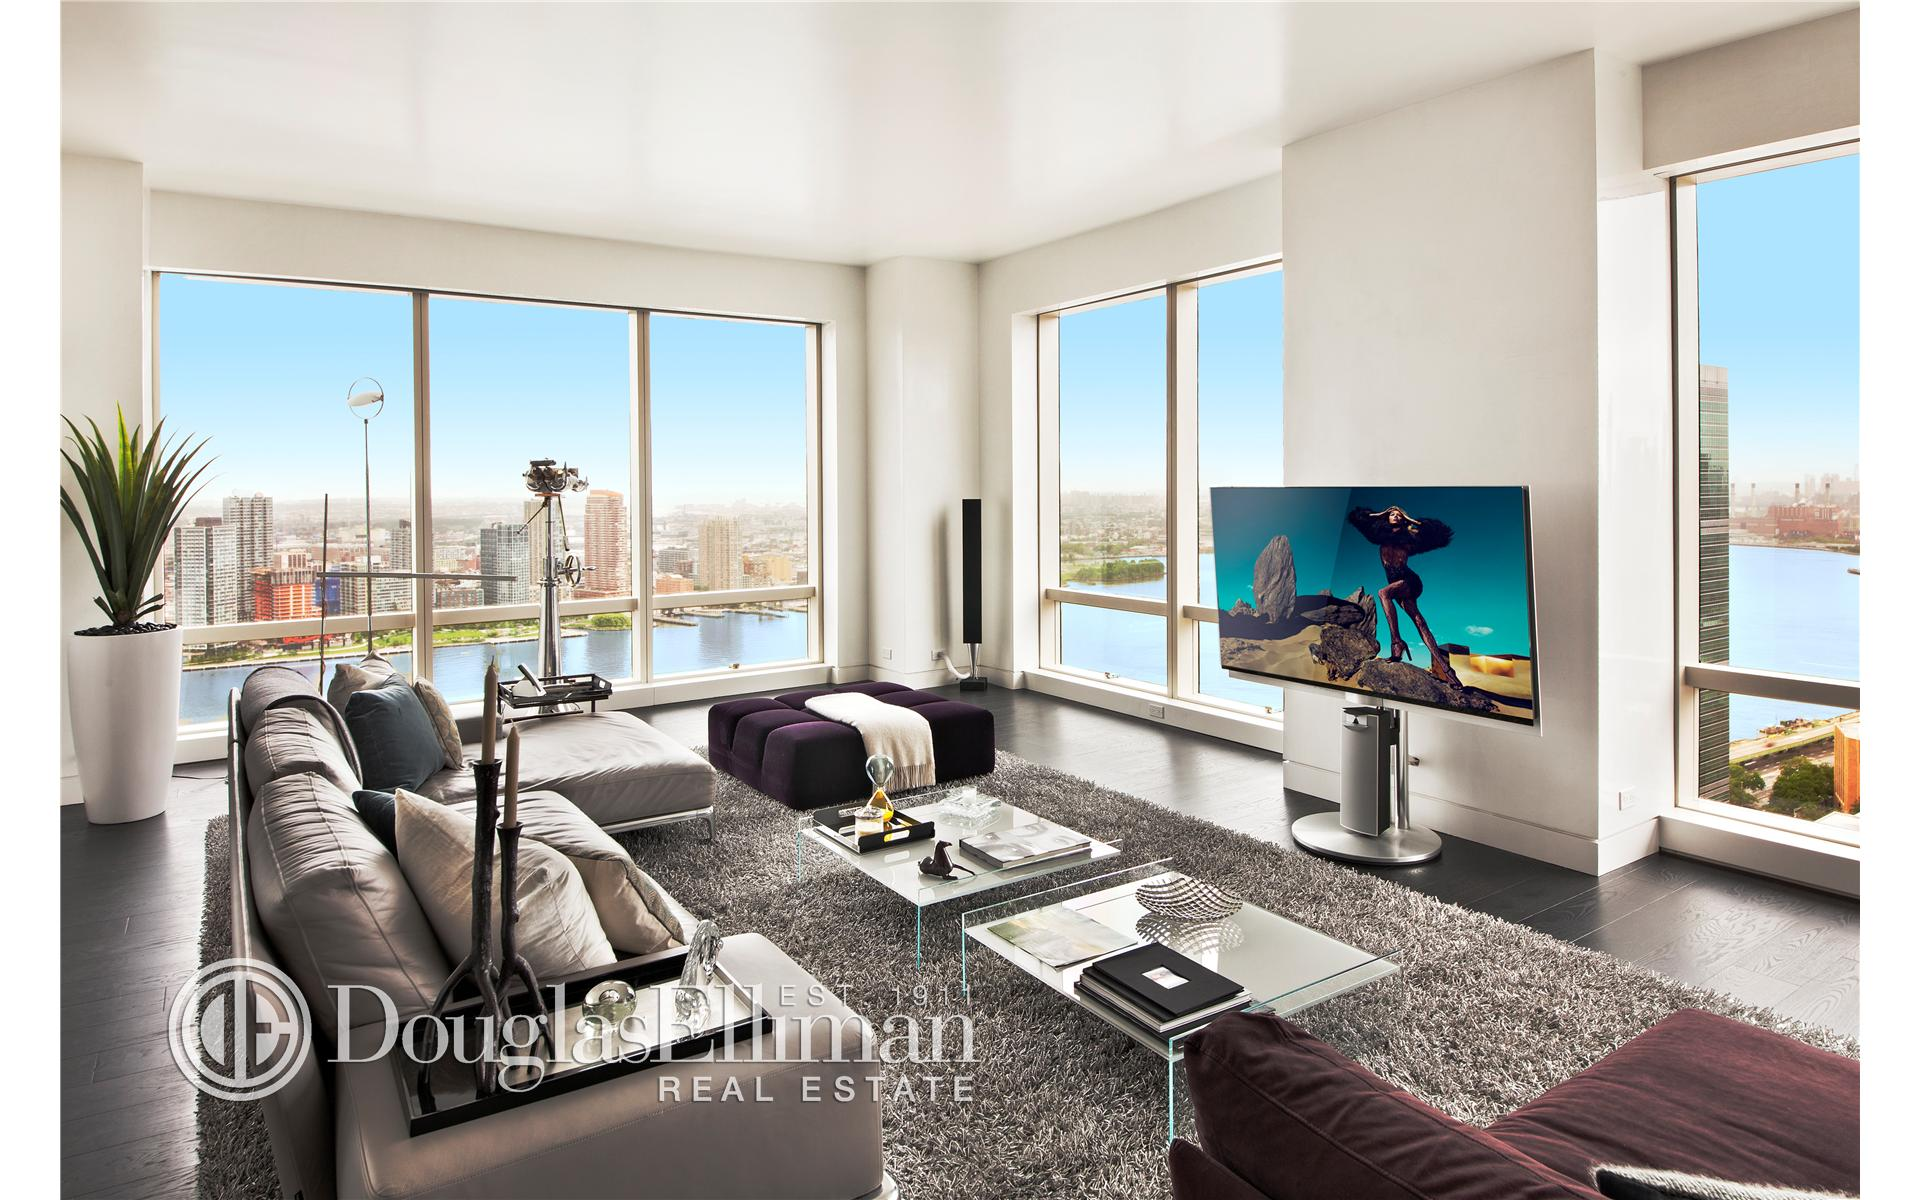 Condominium for Sale at 845 United Nations Plaza New York, New York 10017 United States